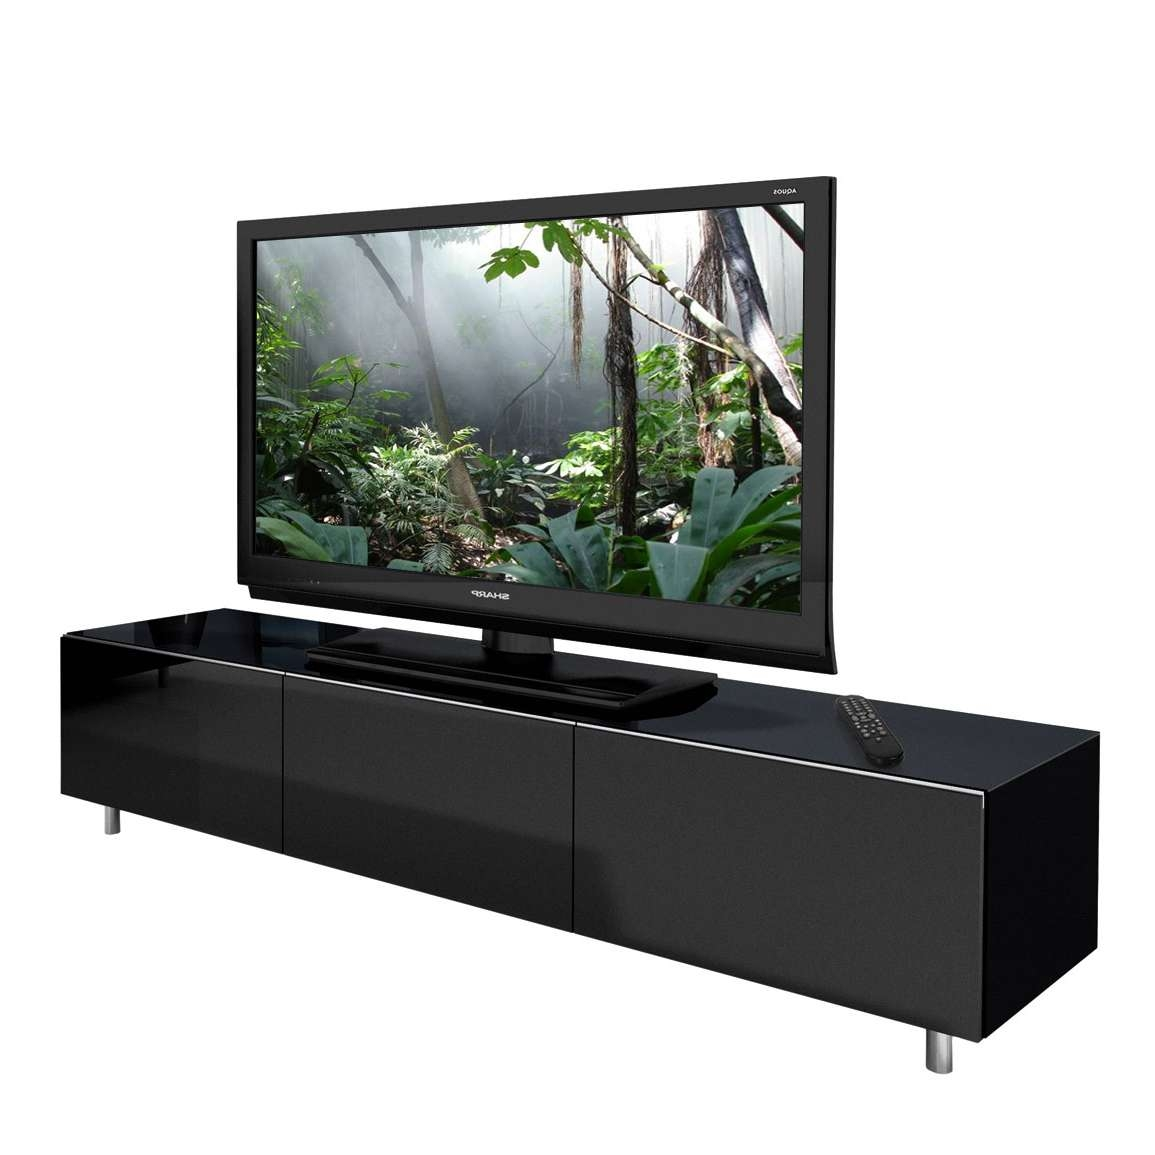 Black Long Tv Stand Incredible Photos Inspirations Wooden Rustic Throughout Extra Long Tv Stands (View 13 of 20)